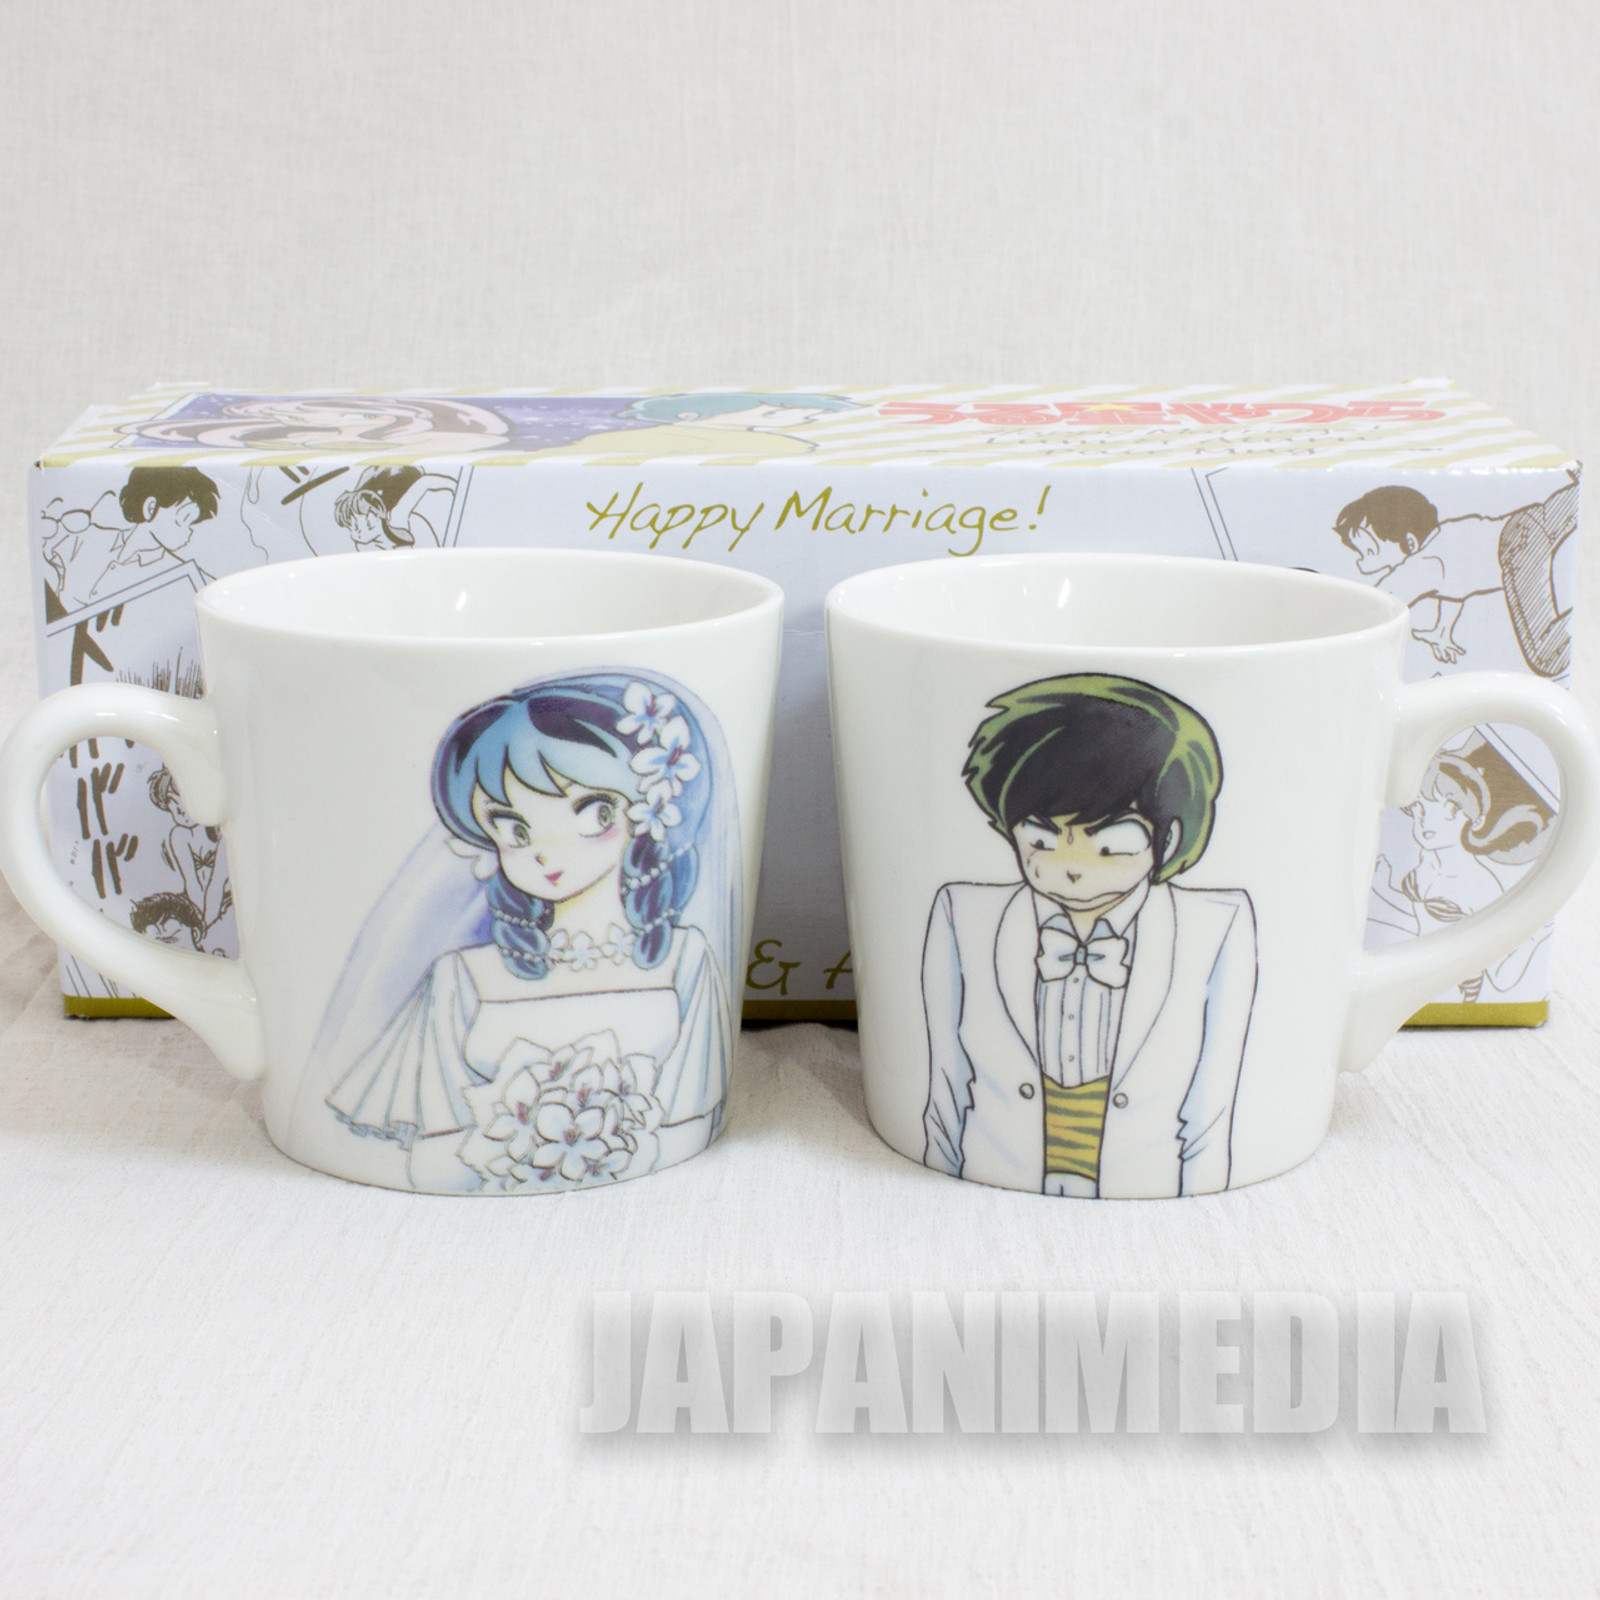 Urusei Yatsura Lum & Ataru Happy Marriage! Pair Mug JAPAN ANIME MANGA